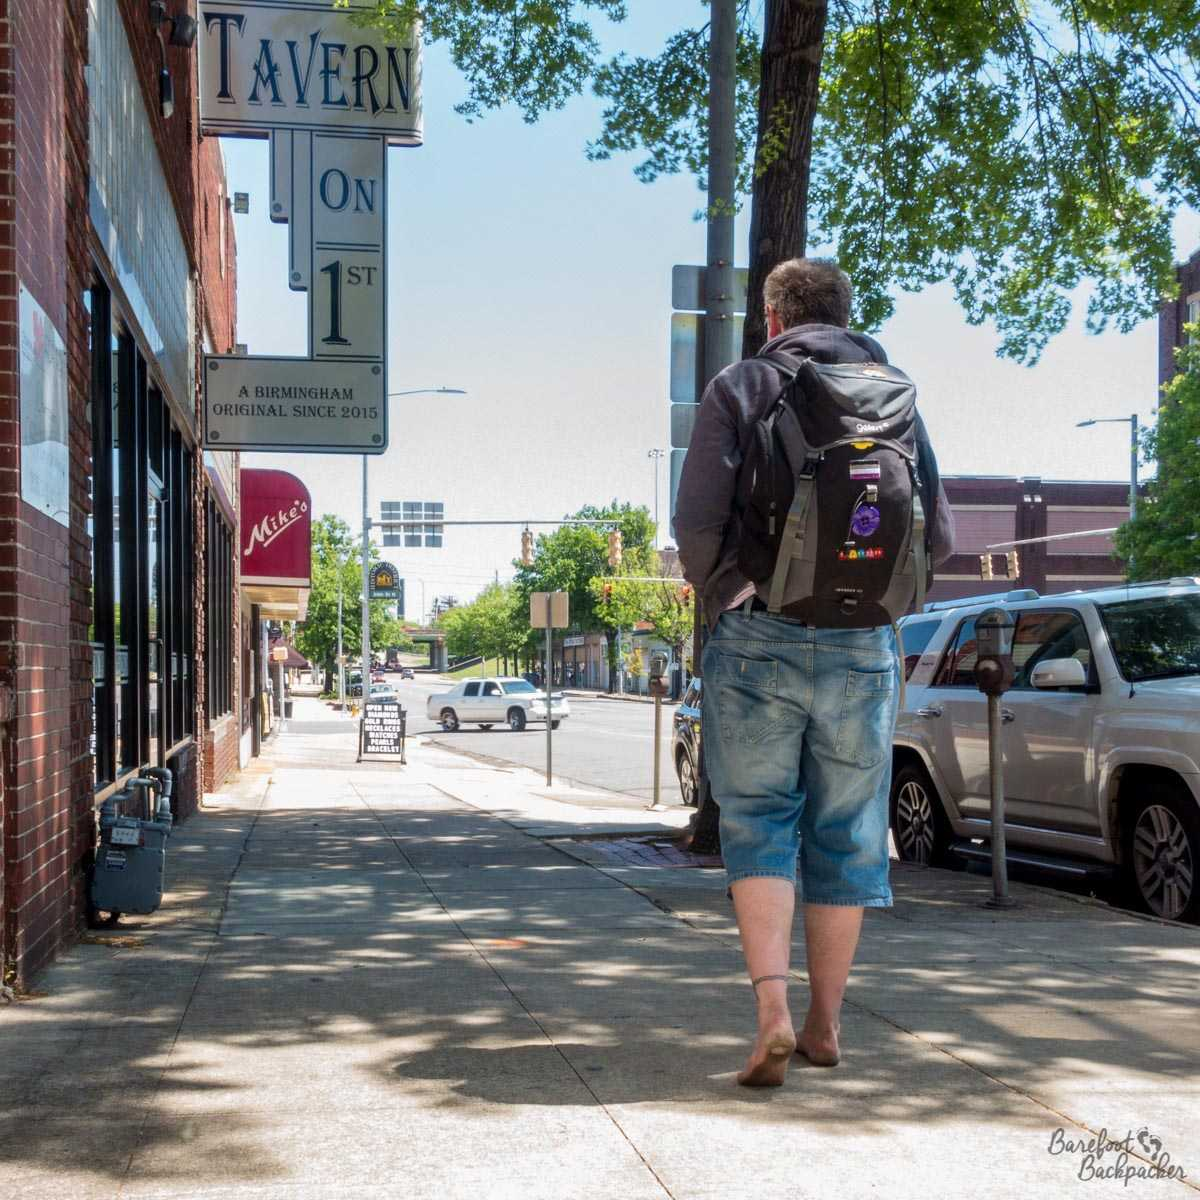 Walking barefoot with a backpack down a street in Birmingham, Alabama